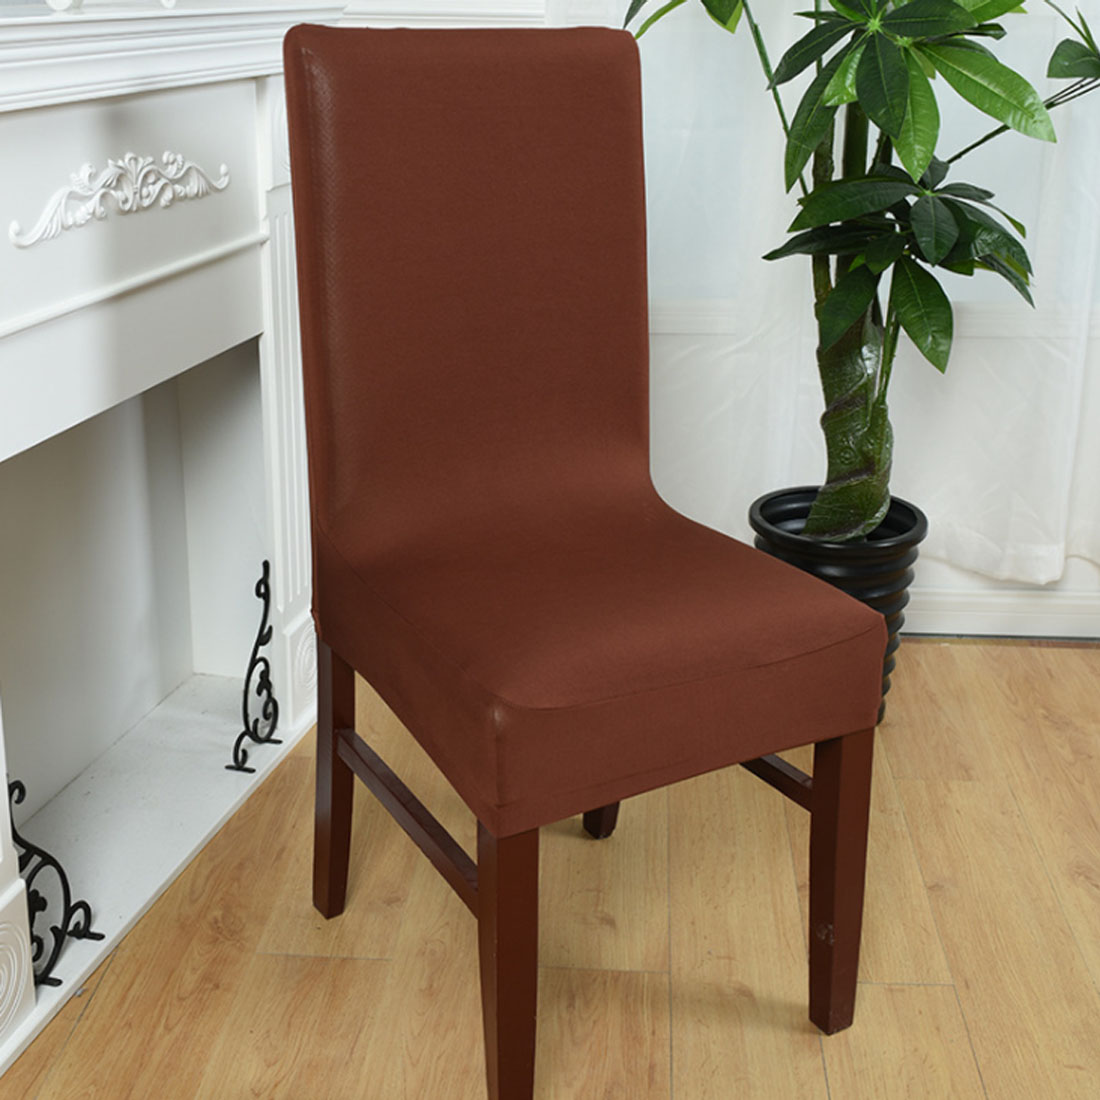 Top Sale Dining cadeira Spandex Strech Dining Room Chair Covers Protector Slipcover Decor housse de chaise for sillas bone